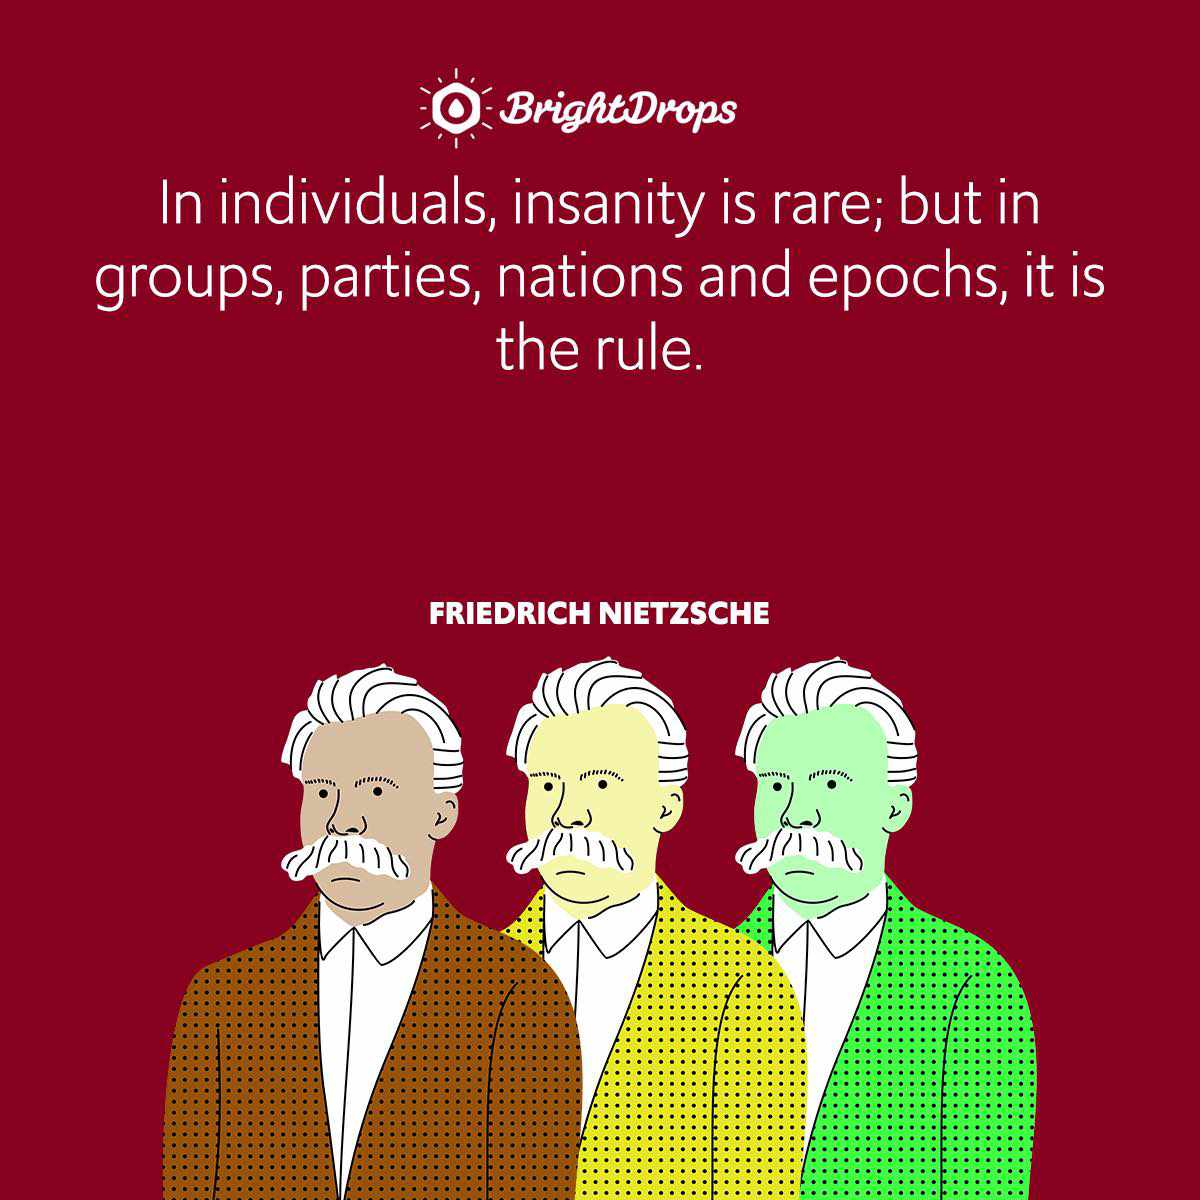 In individuals, insanity is rare; but in groups, parties, nations and epochs, it is the rule.